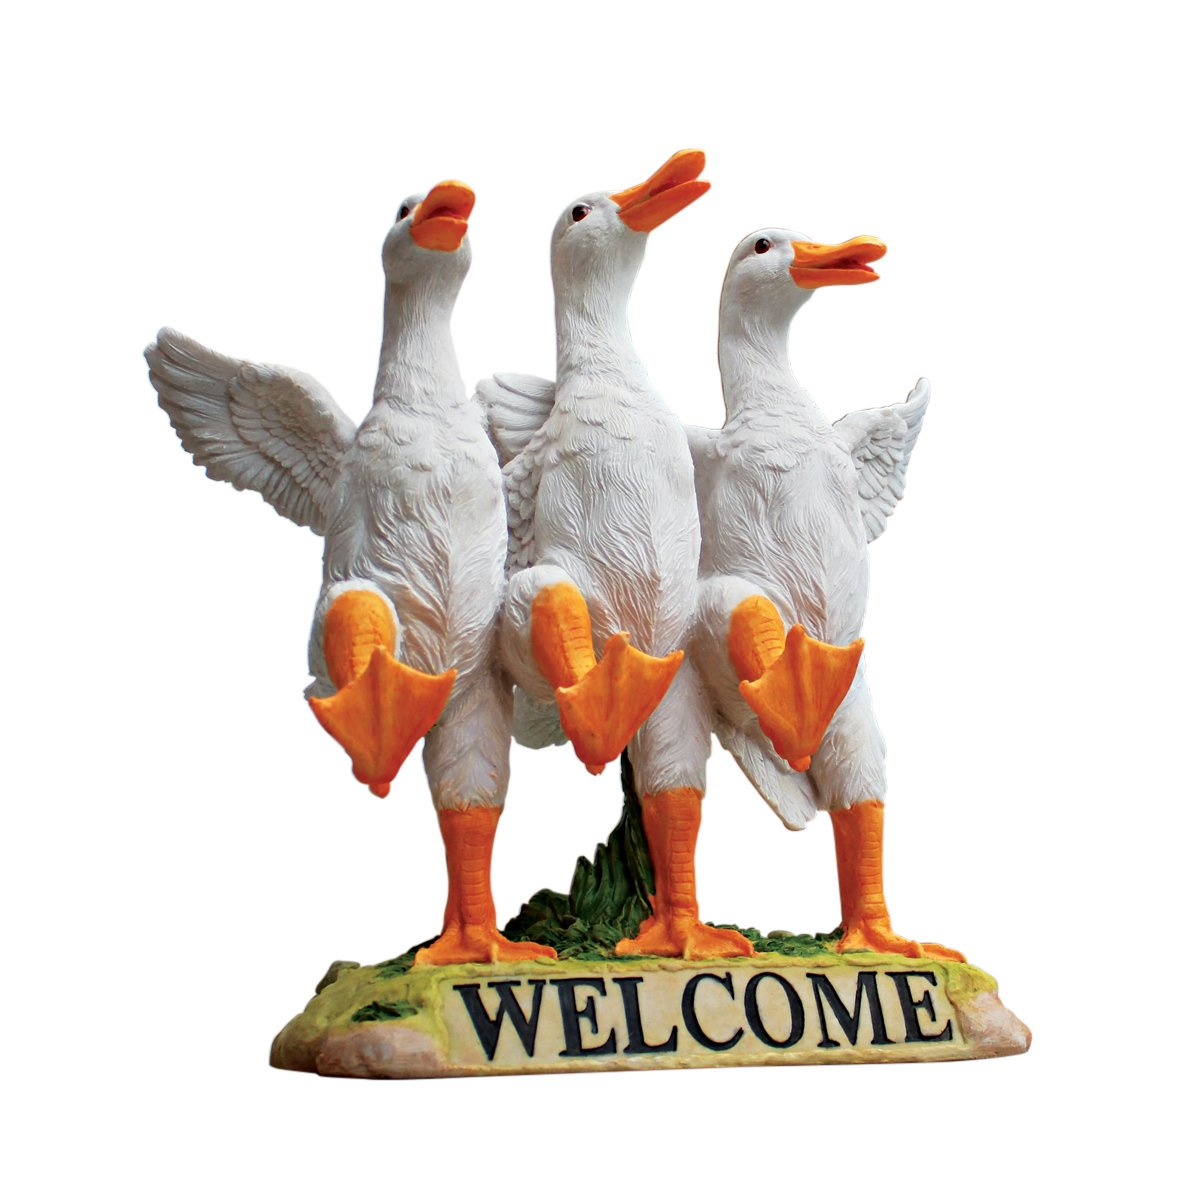 Design Toscano Delightful Dancing Ducks Welcome Sign Garden Statue, 11 Inch, Polyresin, Full Color